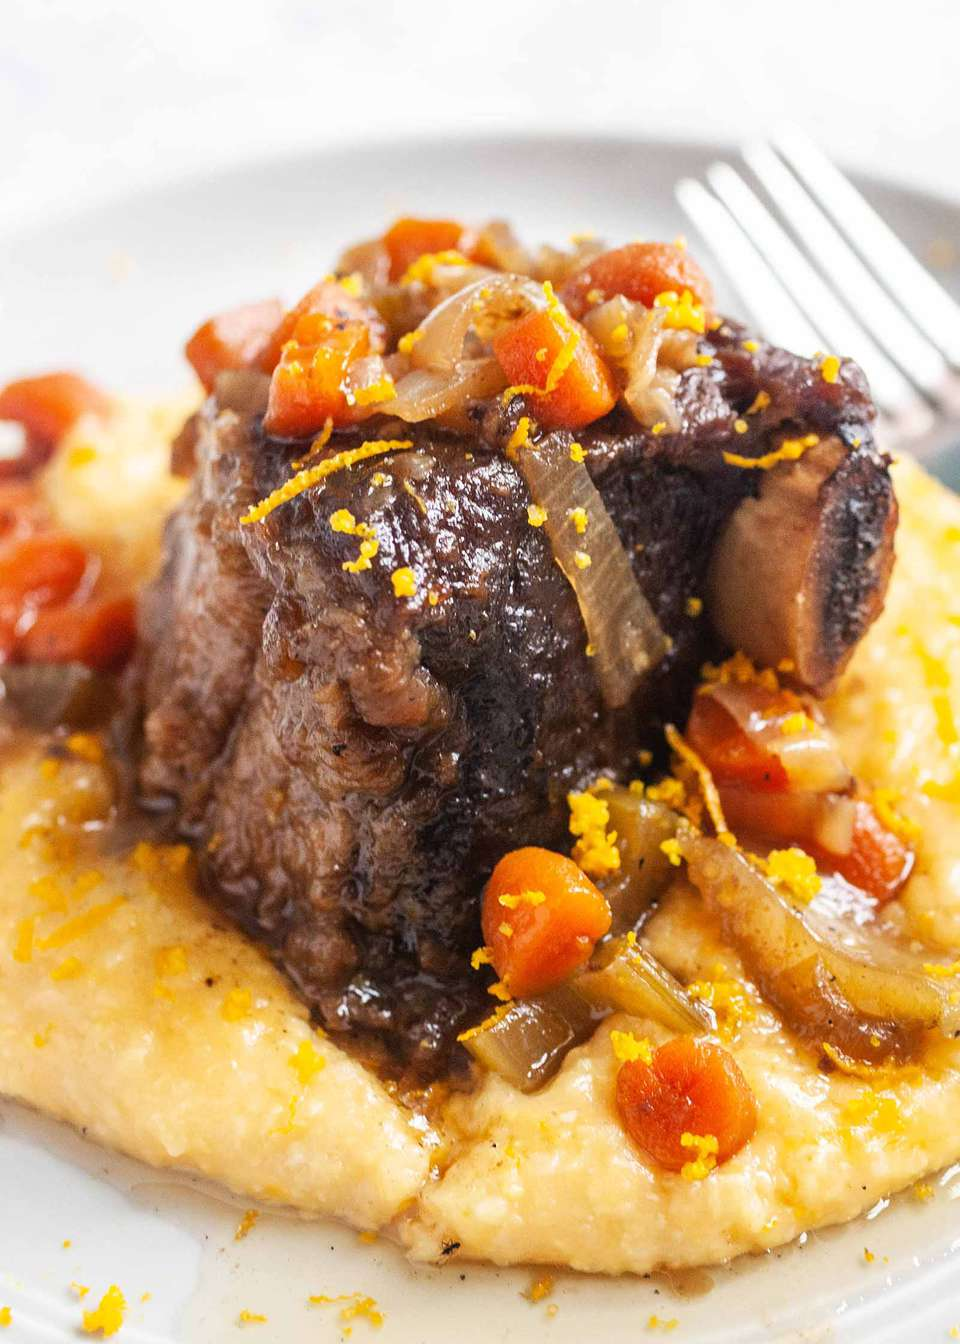 Crockpot Braised Beef Short Ribs with Polenta and carrots on a round plate